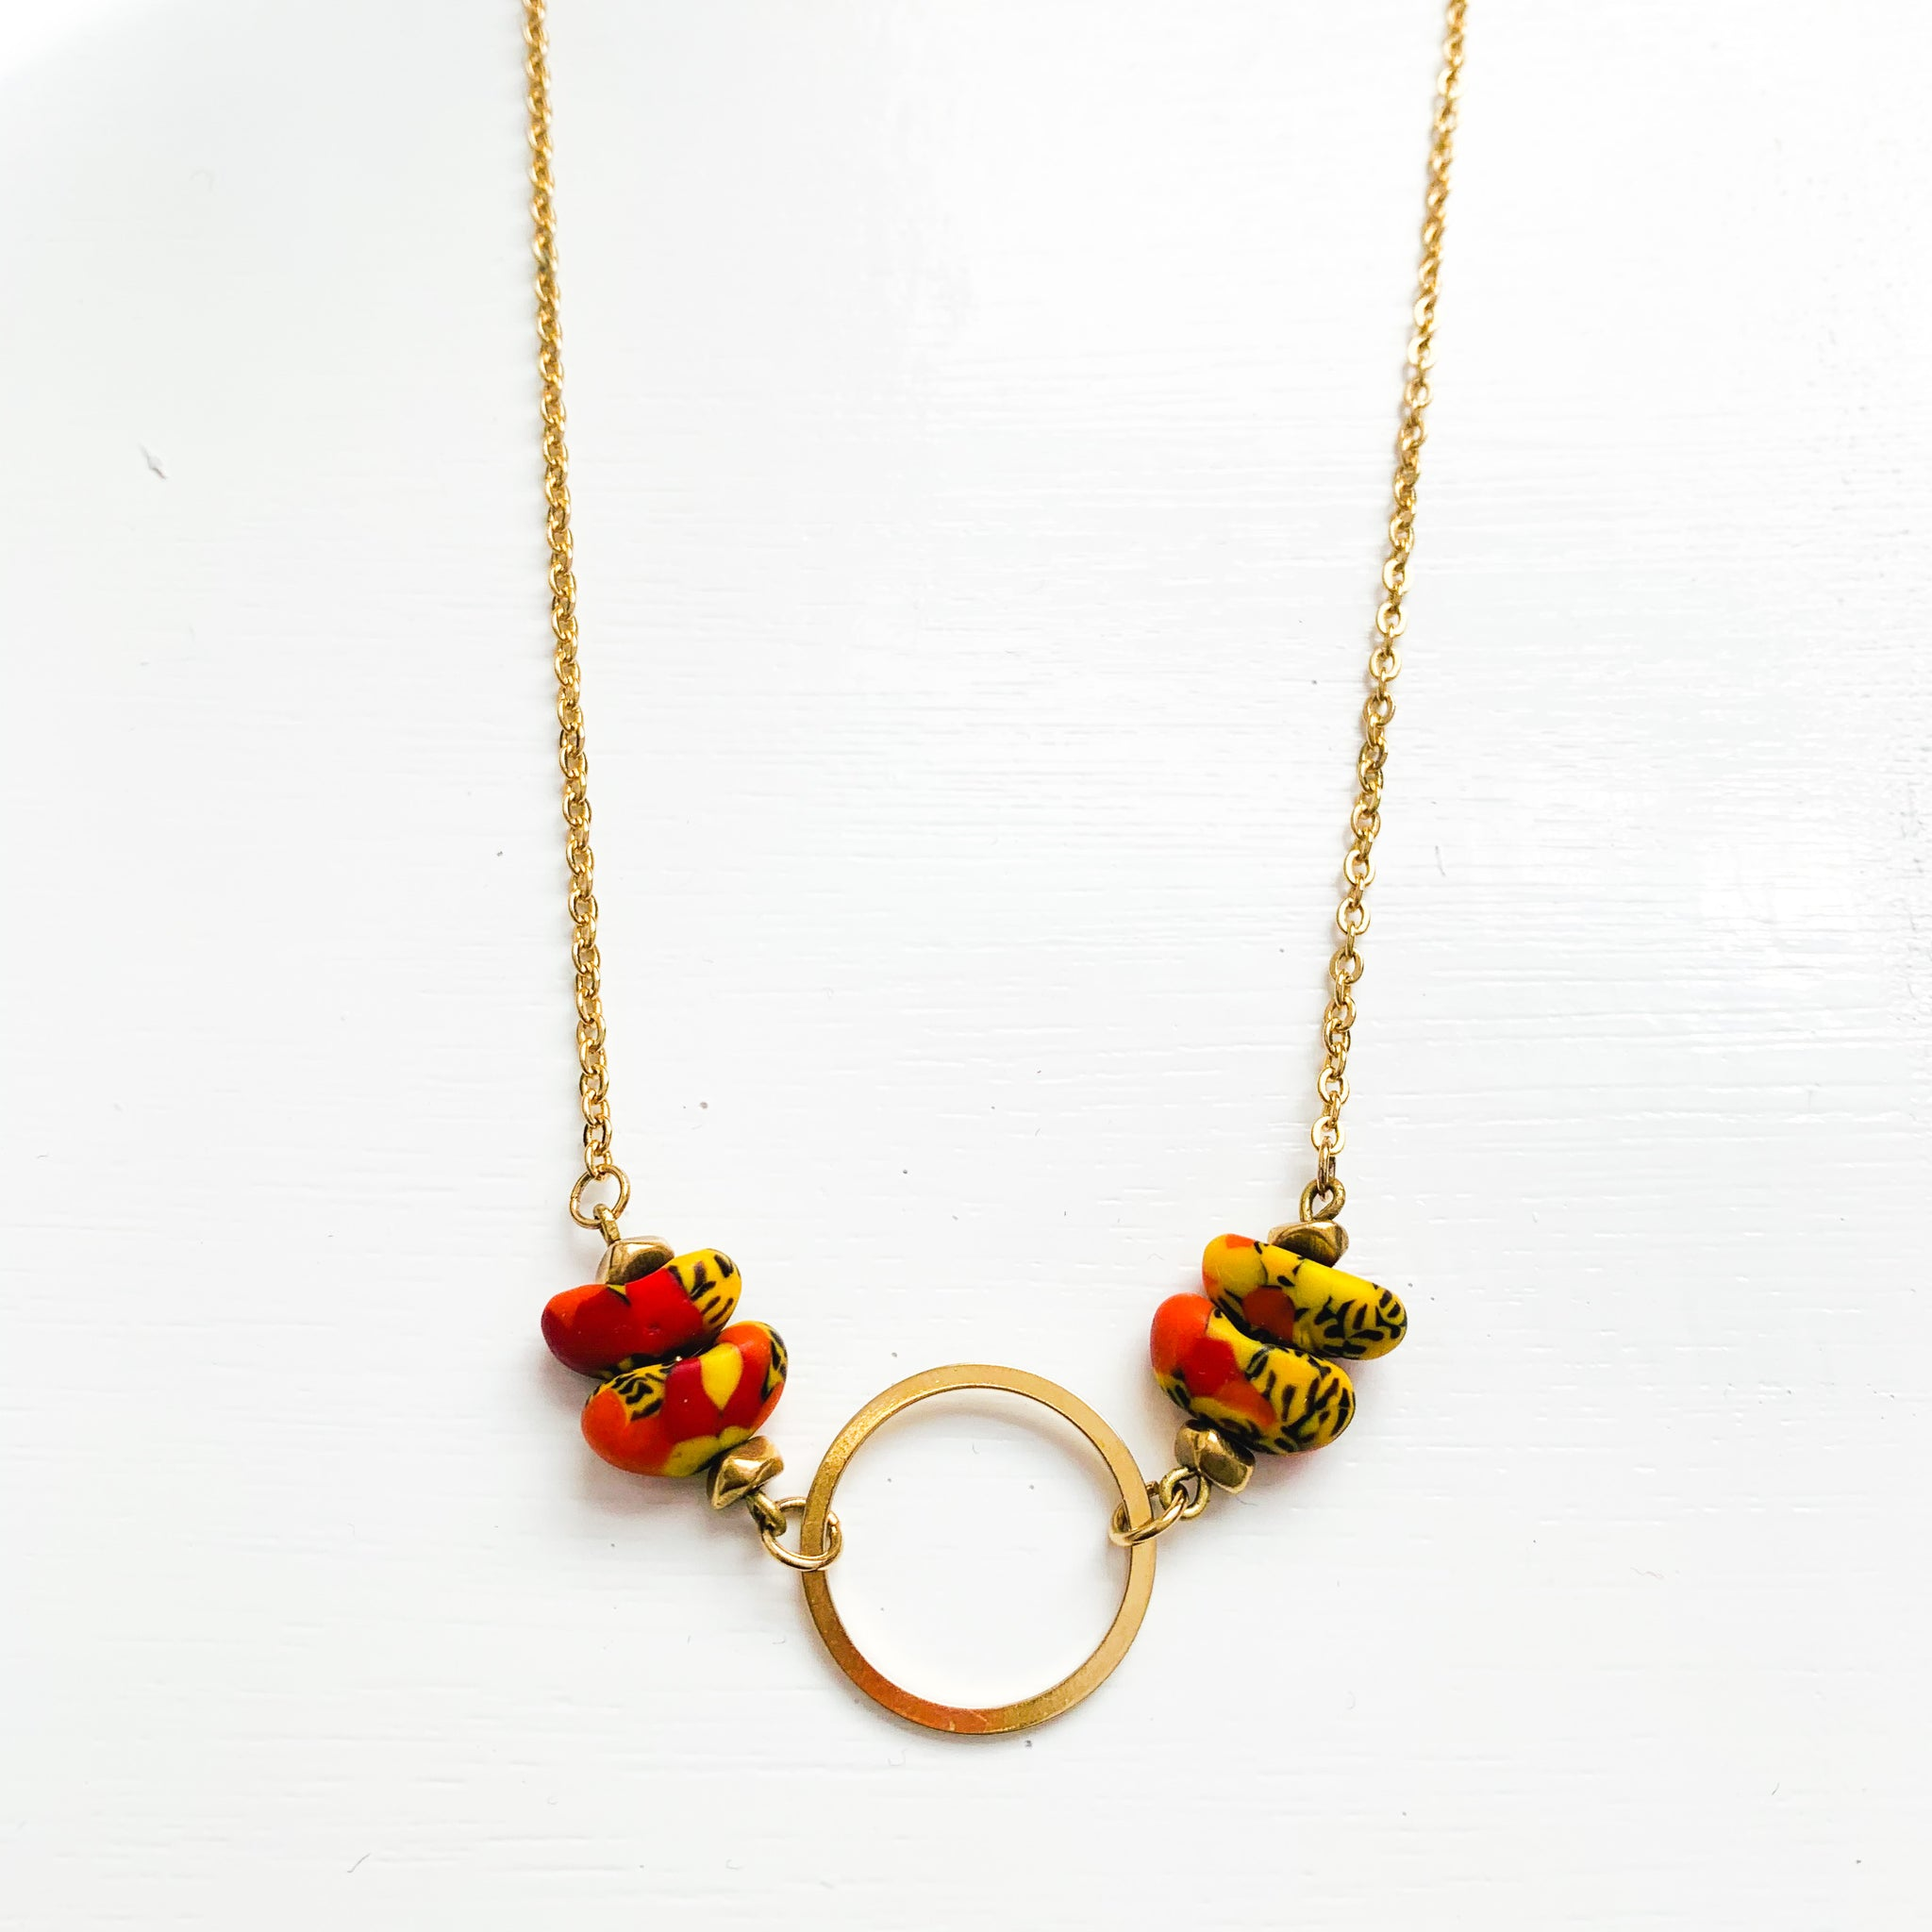 Sabella Necklace